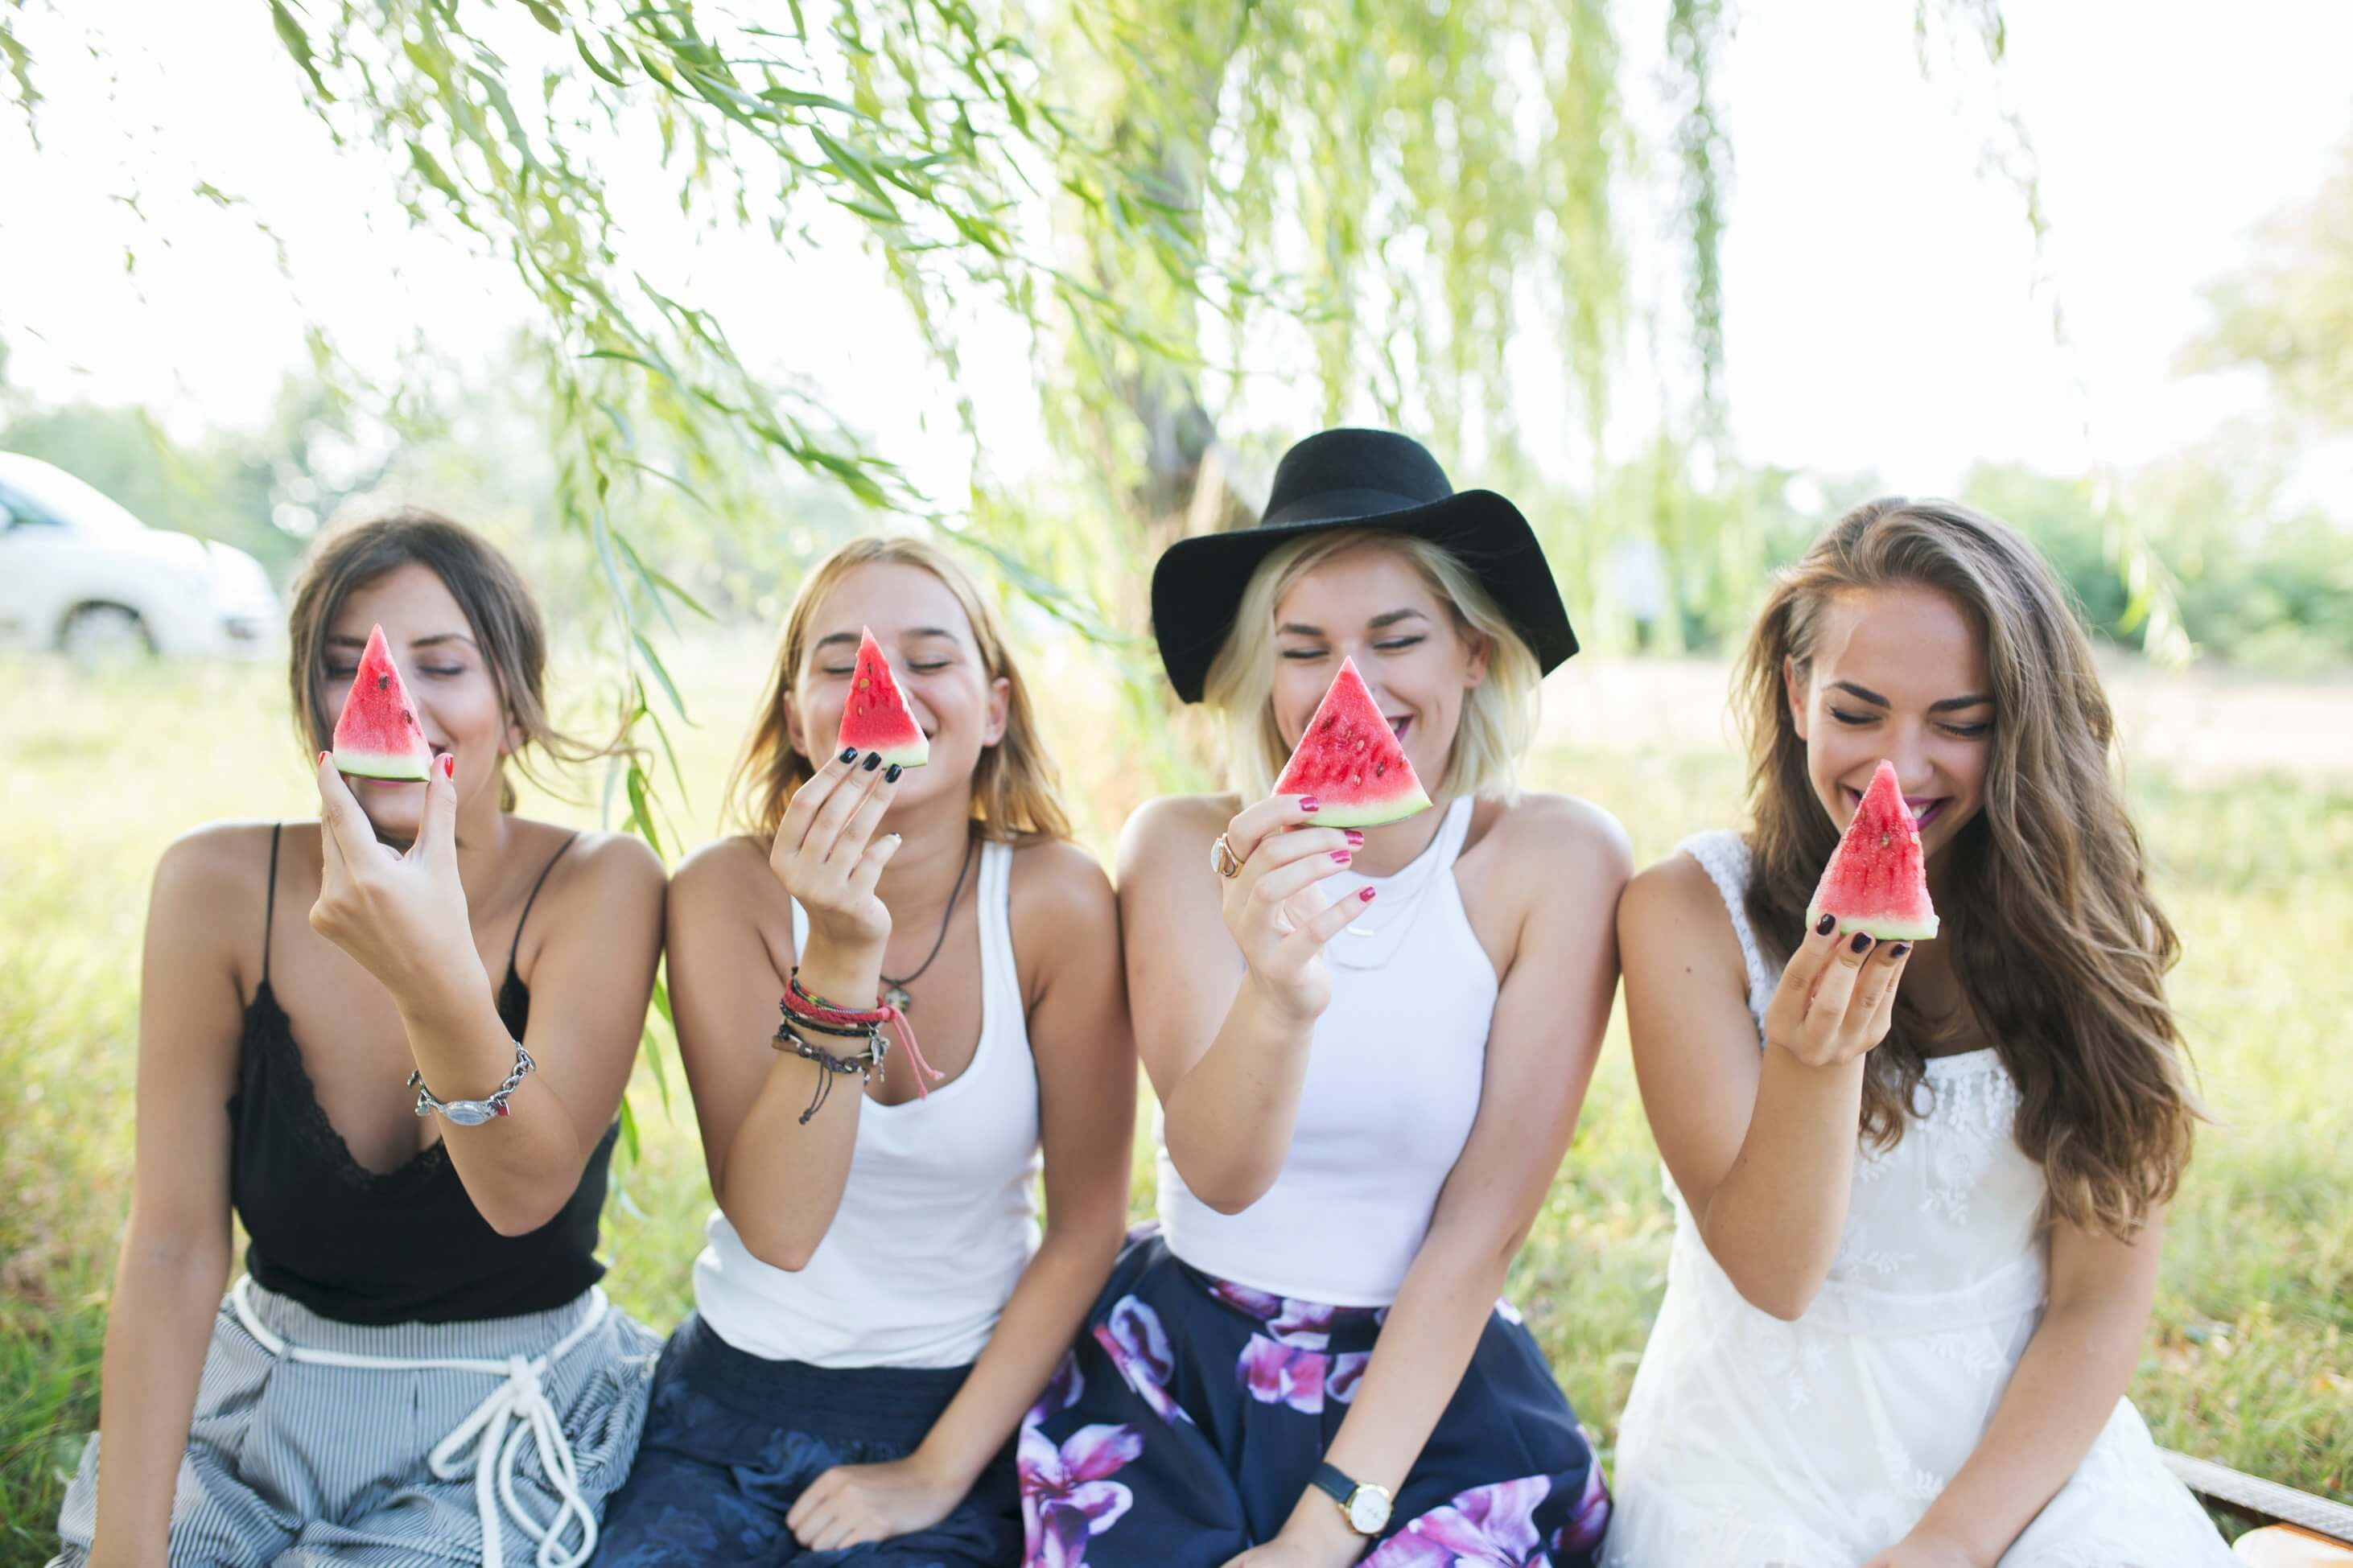 Four girls closing their eyes and smiling while holding a cut of watermelon while sitting on the grass